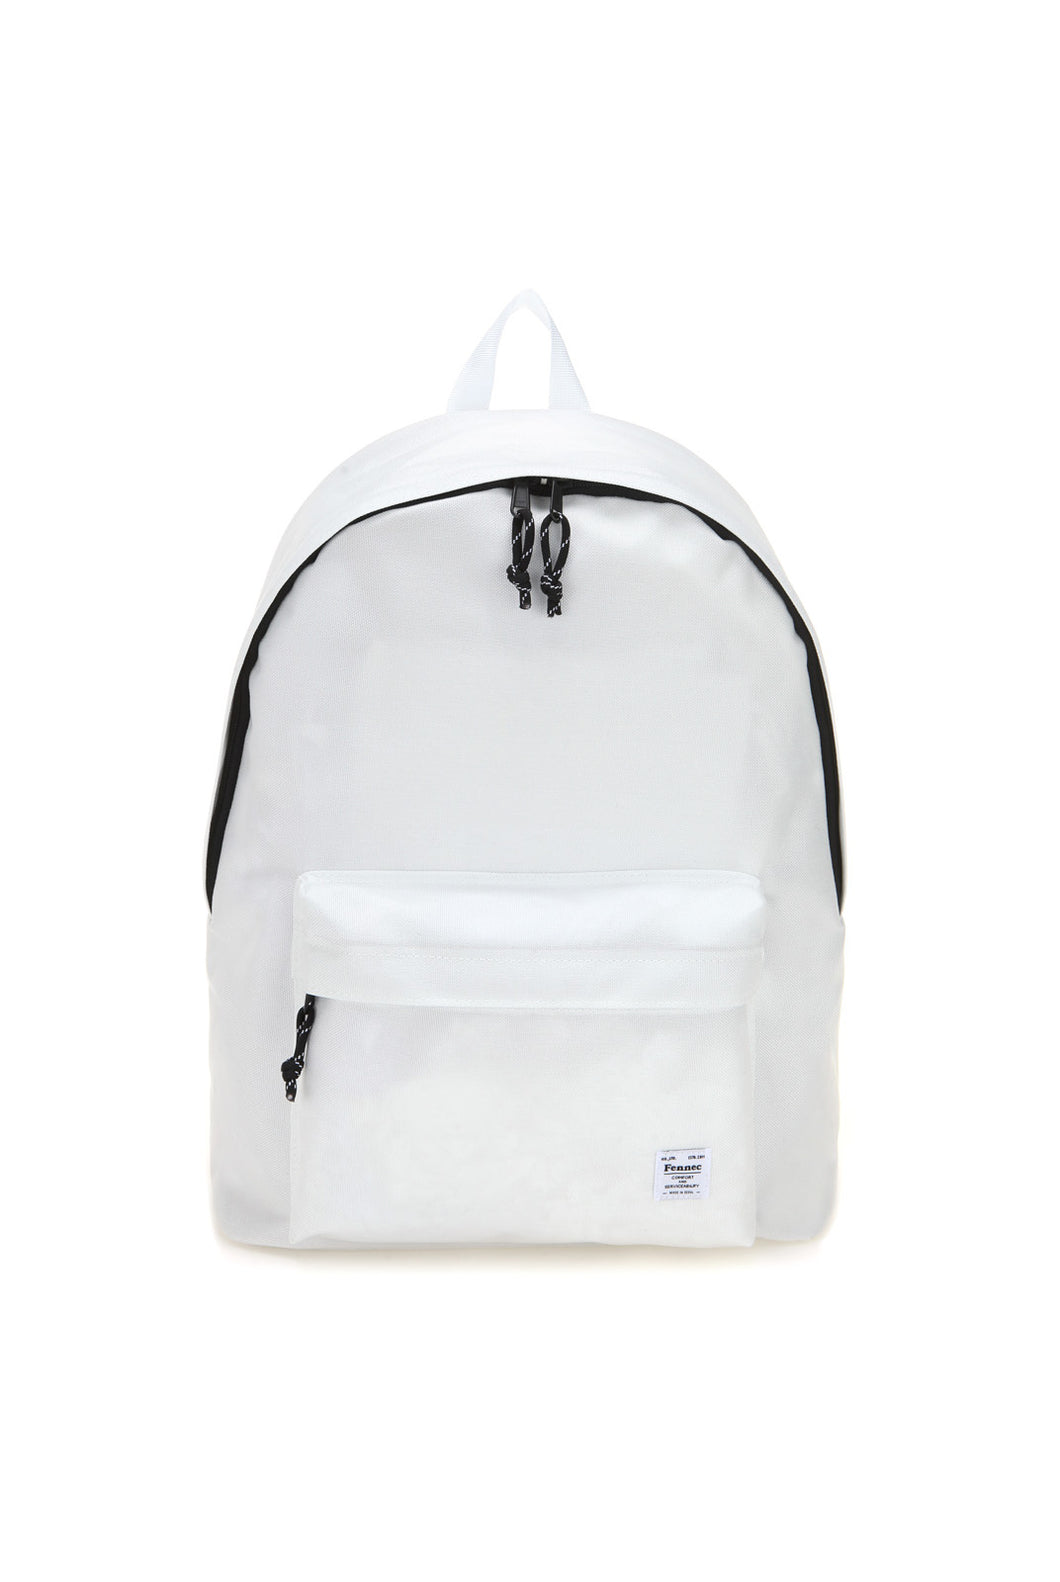 Fennec - C & S - Backpack - White